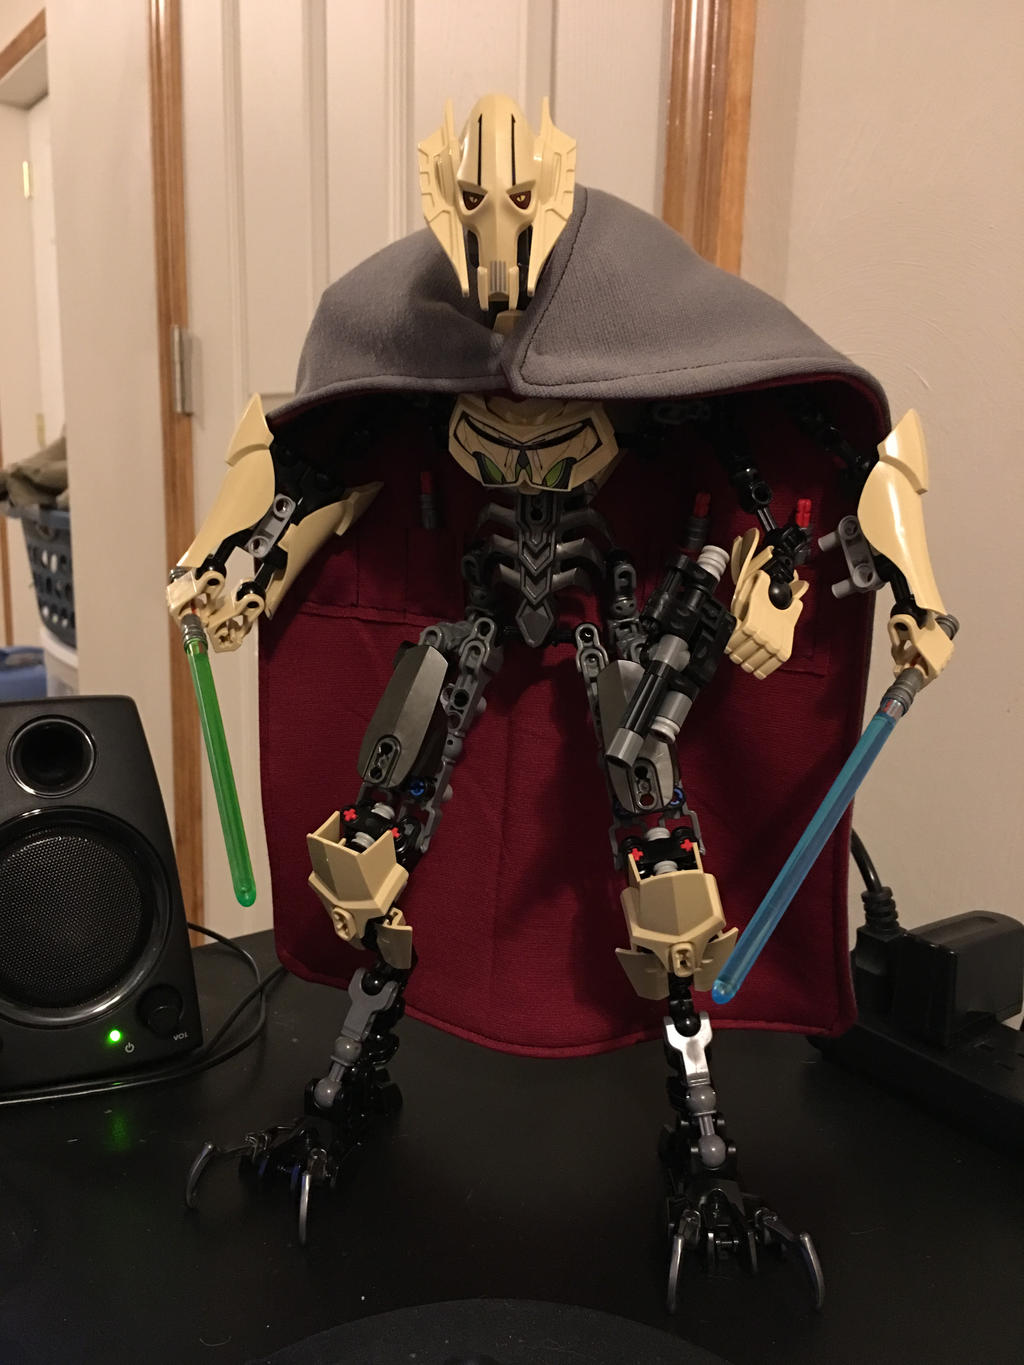 Lego CCBS General Grievous Improved by ToaAntan on DeviantArt